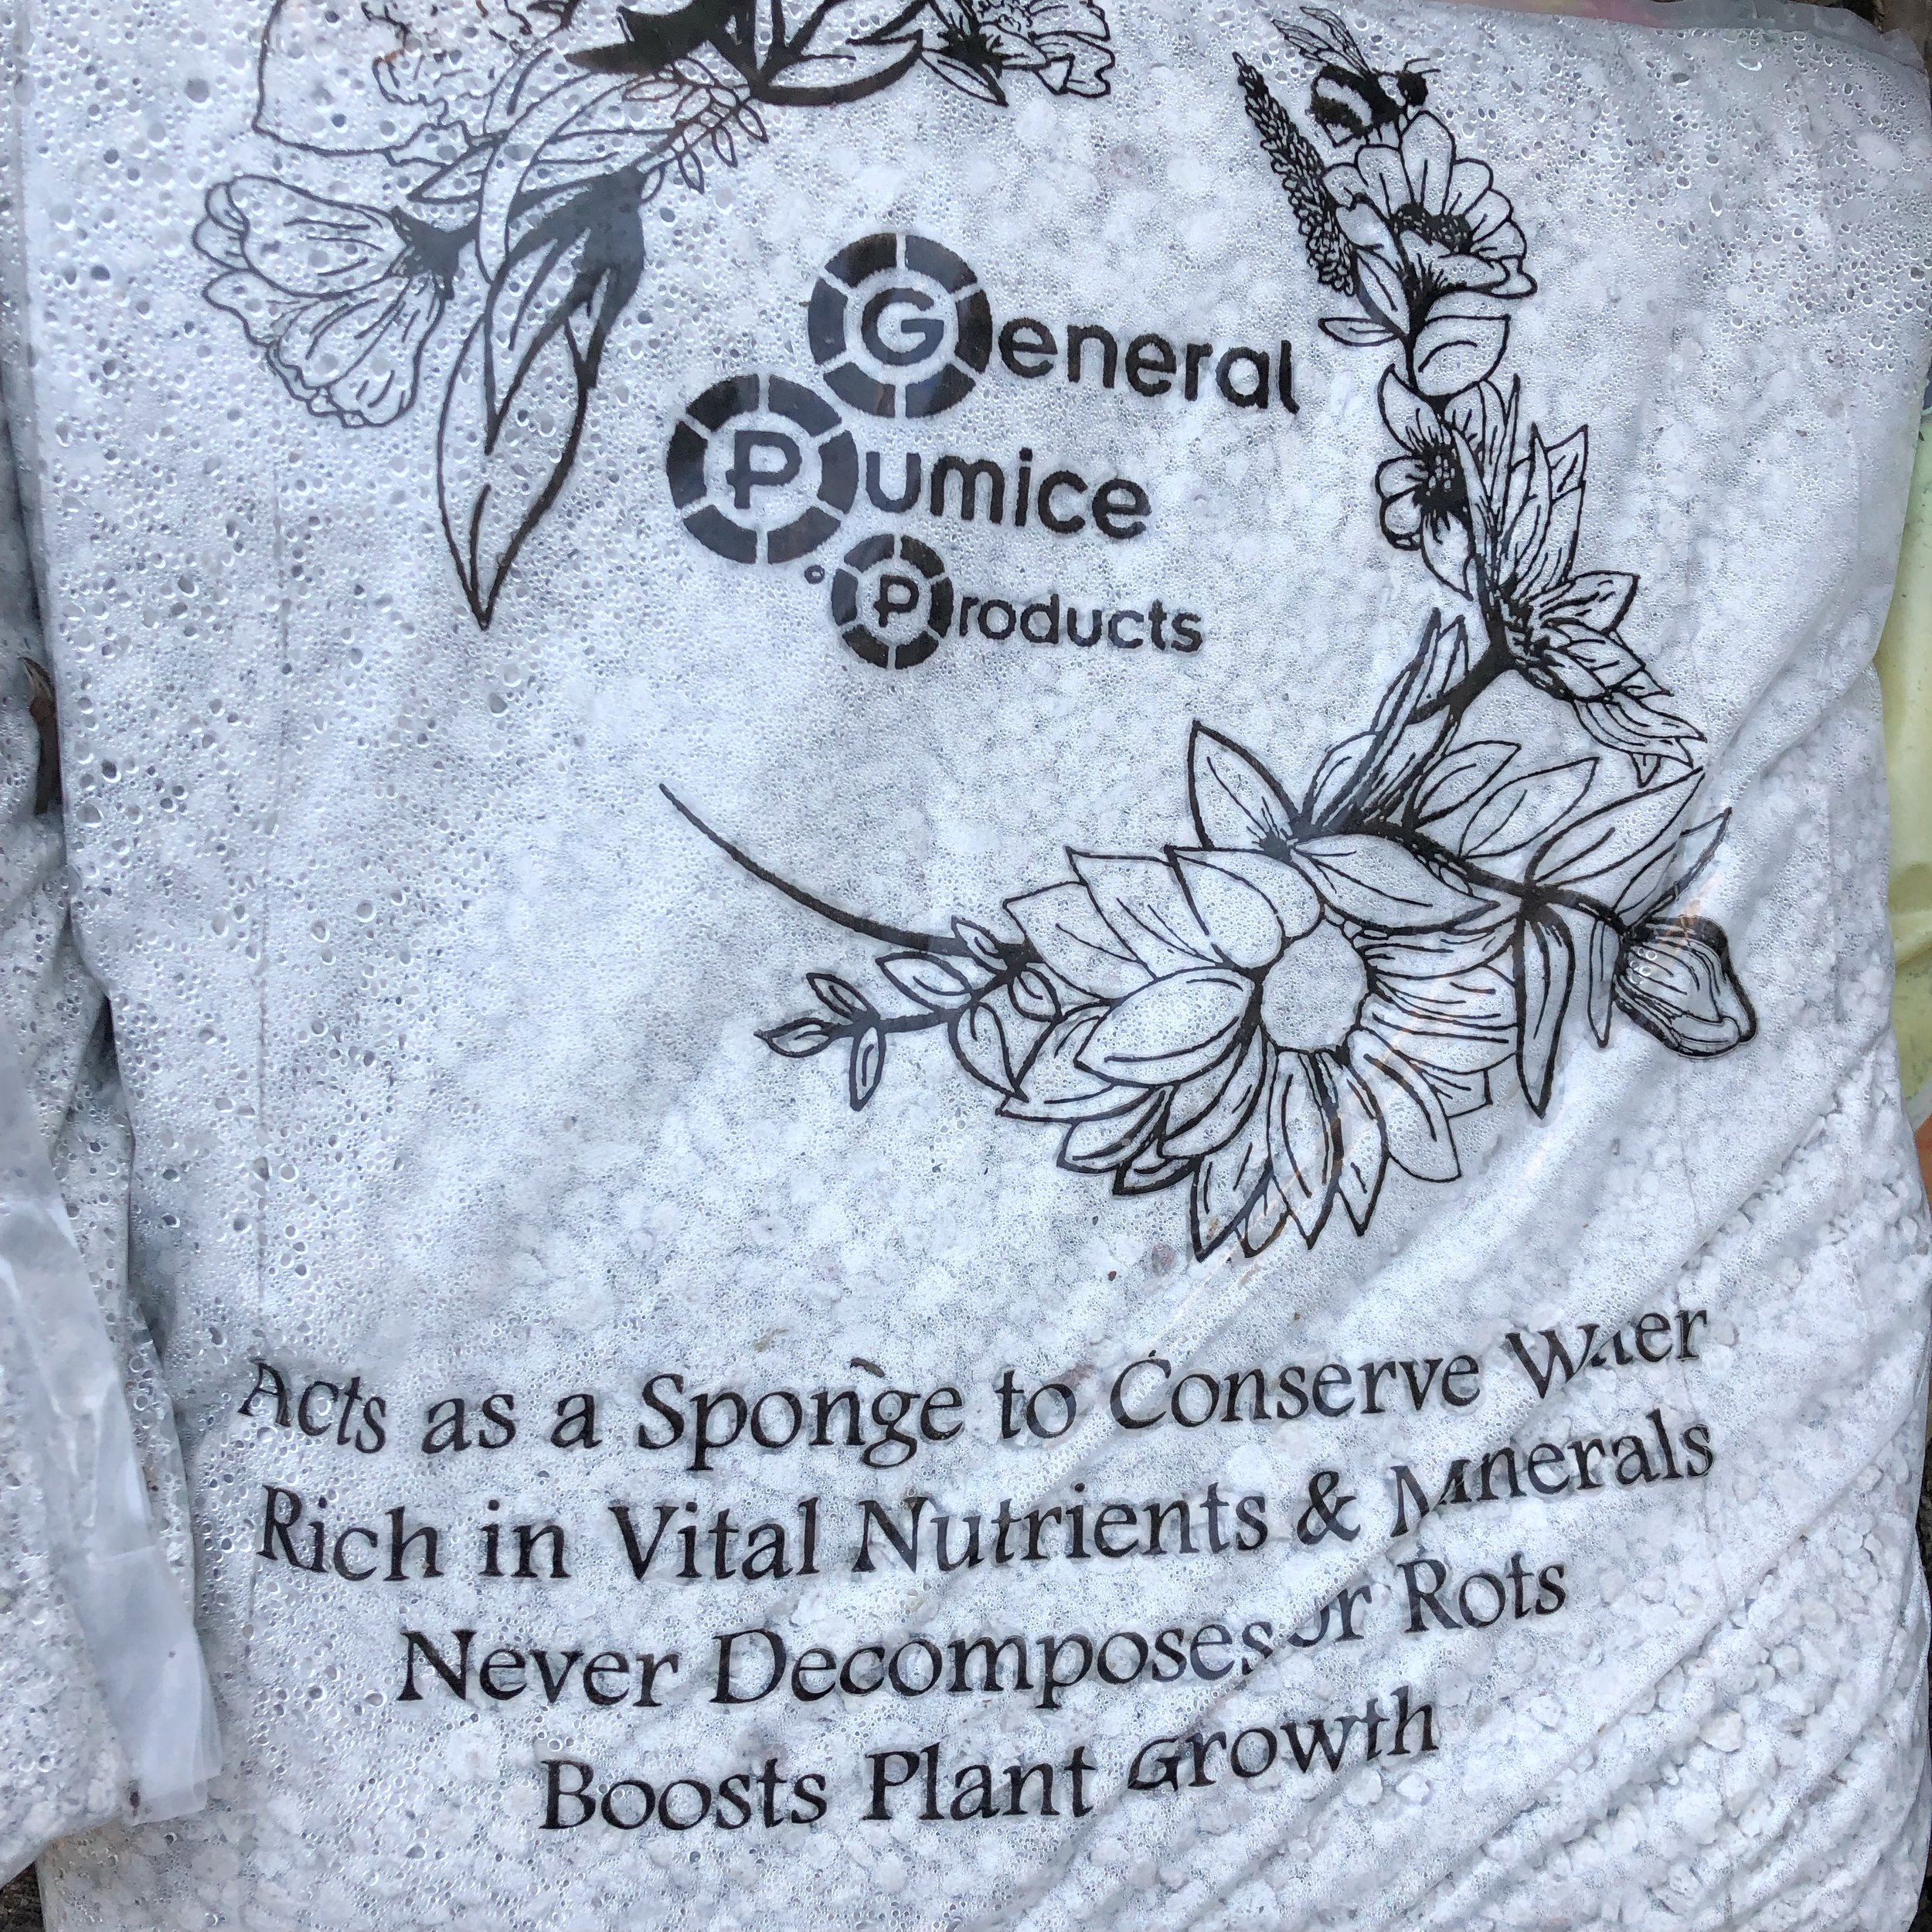 Pumice is one of my favorite soil amendments. Pictured is General Pumice Products, a local company that sells online as well (www.GeneralPumiceProducts.com/order-here/). I was gifted this pumice but started using it well before I started blogging.